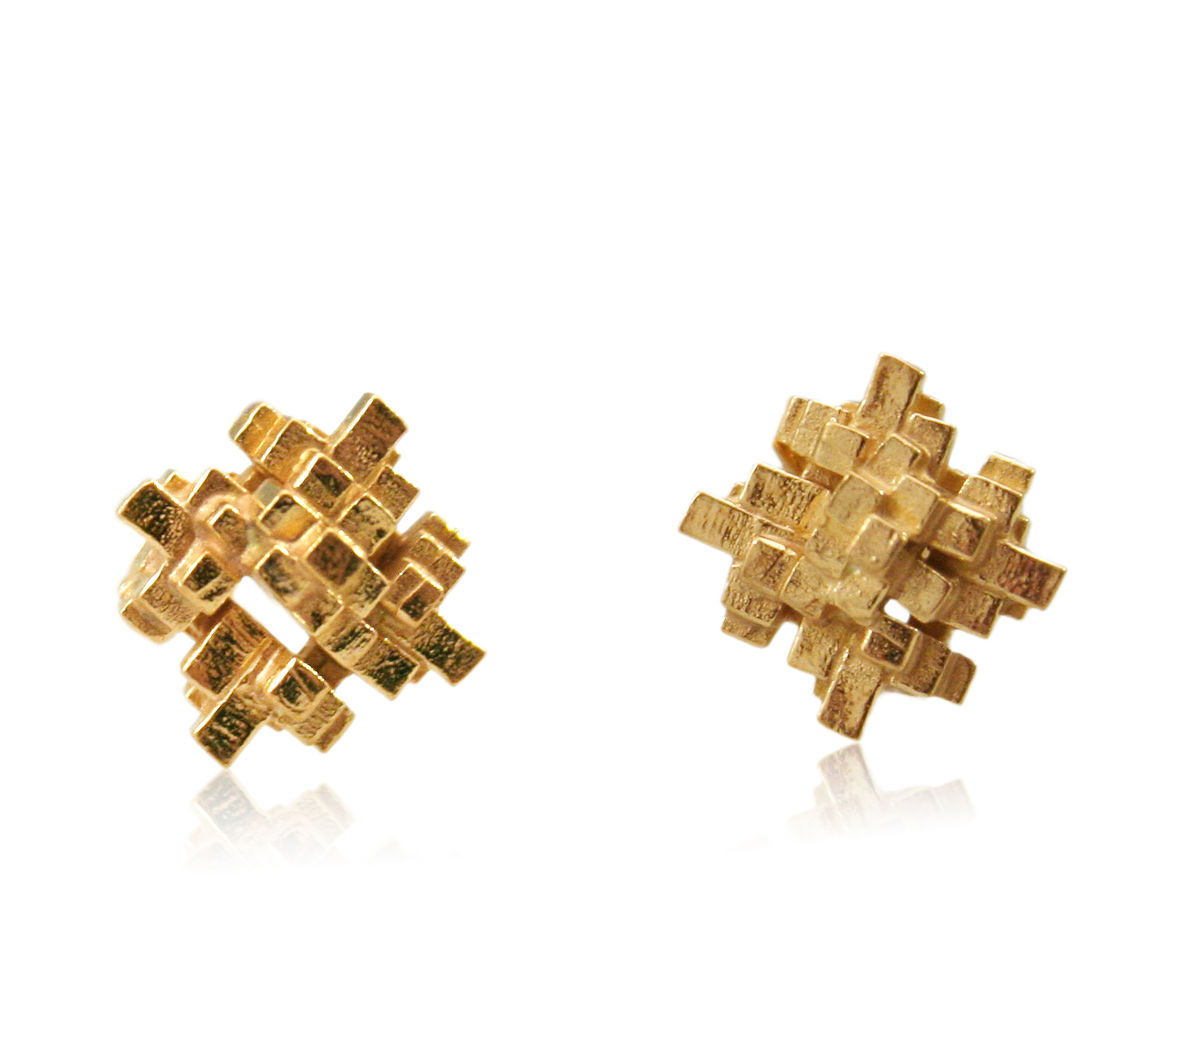 Tetris Square Earrings Gold - product images  of